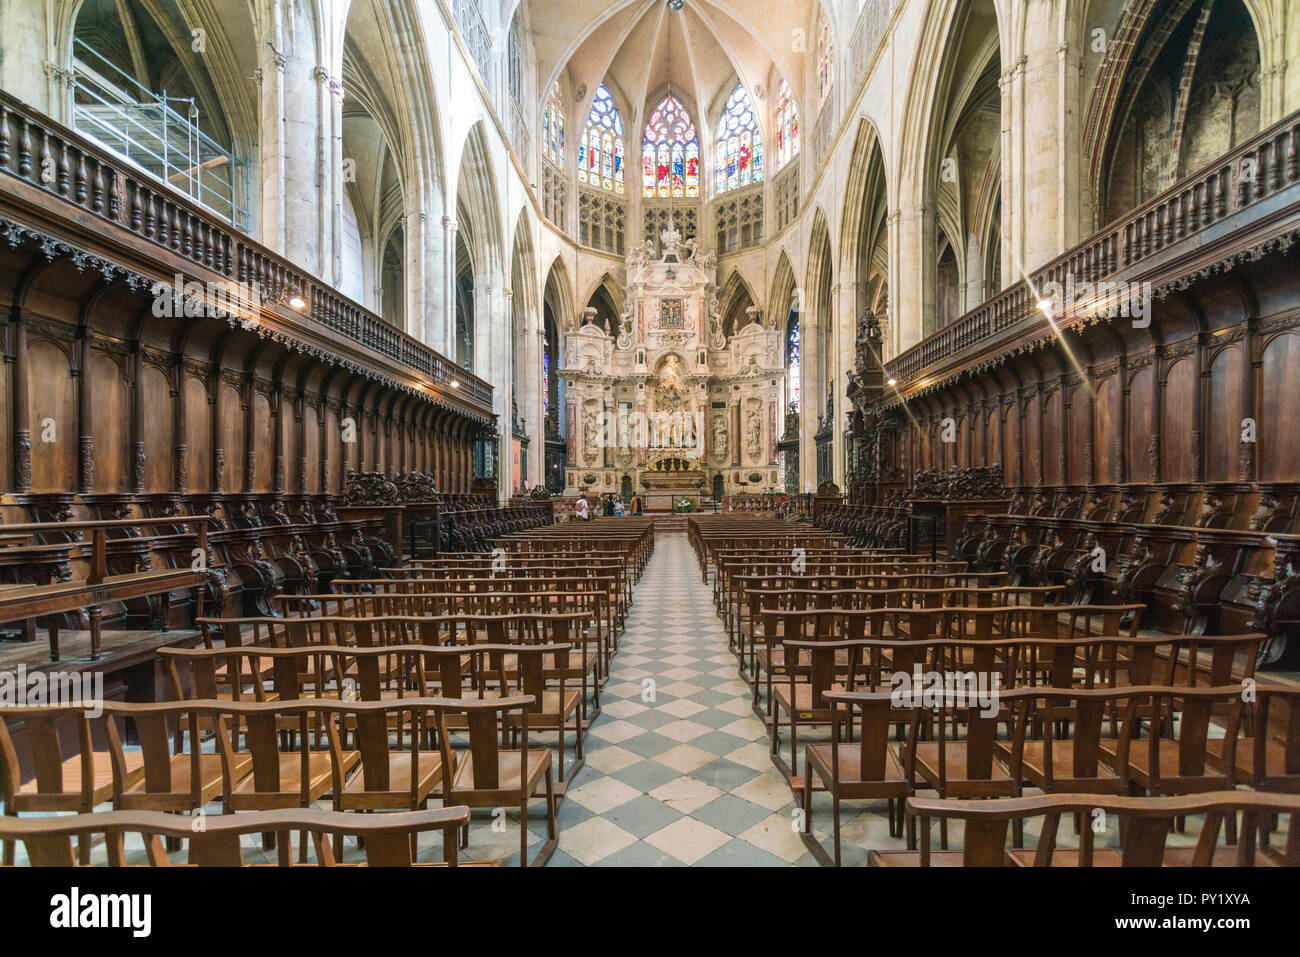 Interior of St Stephan's Toulouse Cathedral, Toulouse, Occitanie, France - Stock Image